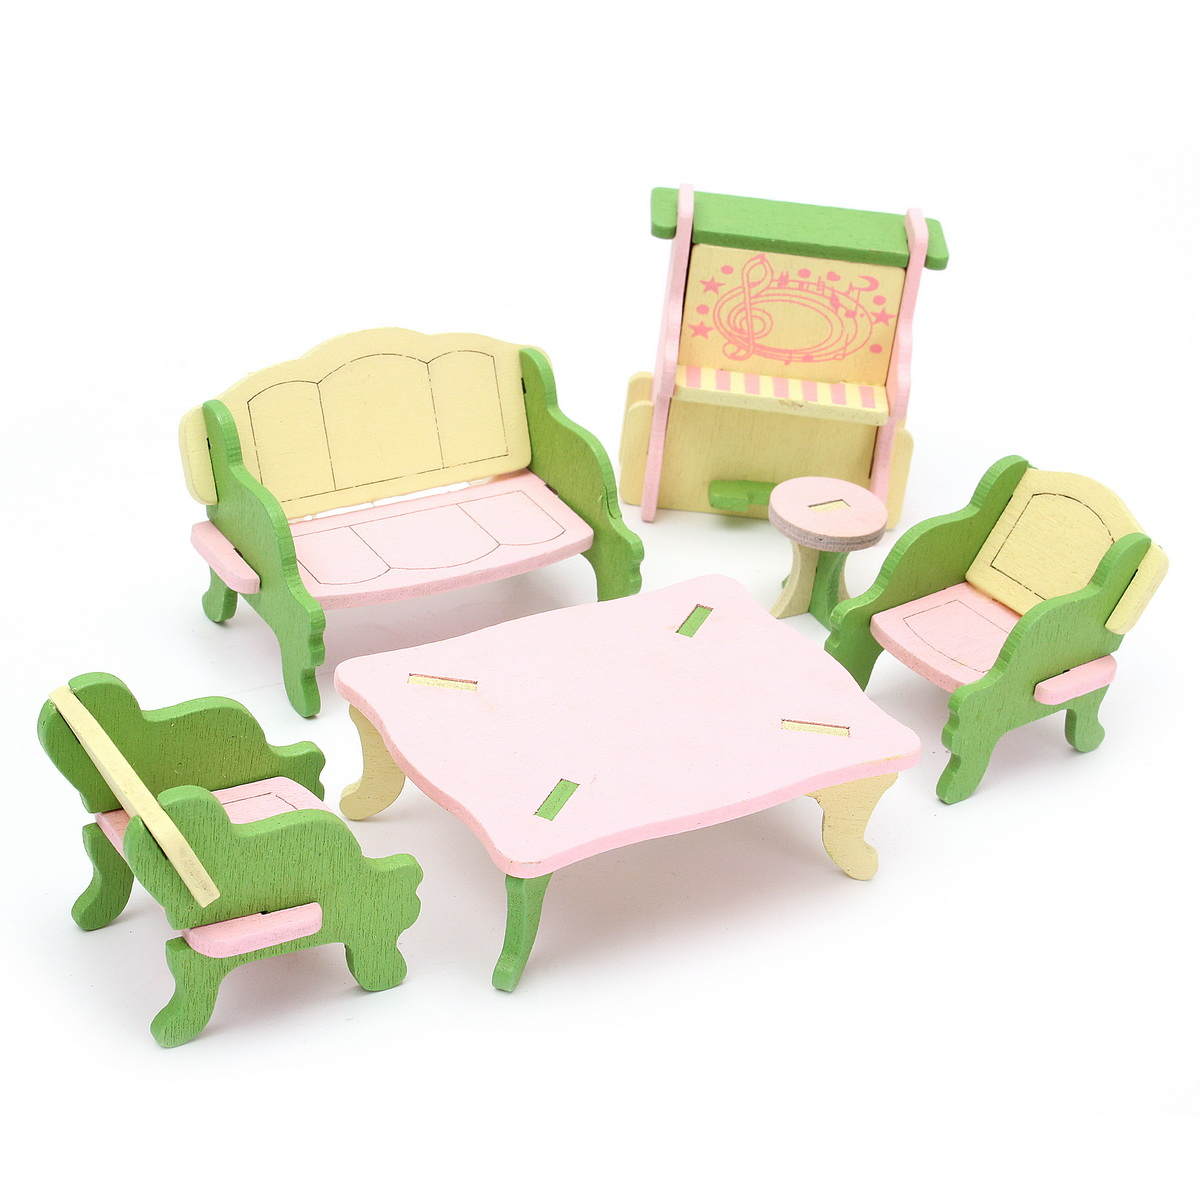 Wooden Doll House Miniature Bedroom Furniture Set Families Role Play Toys Gift